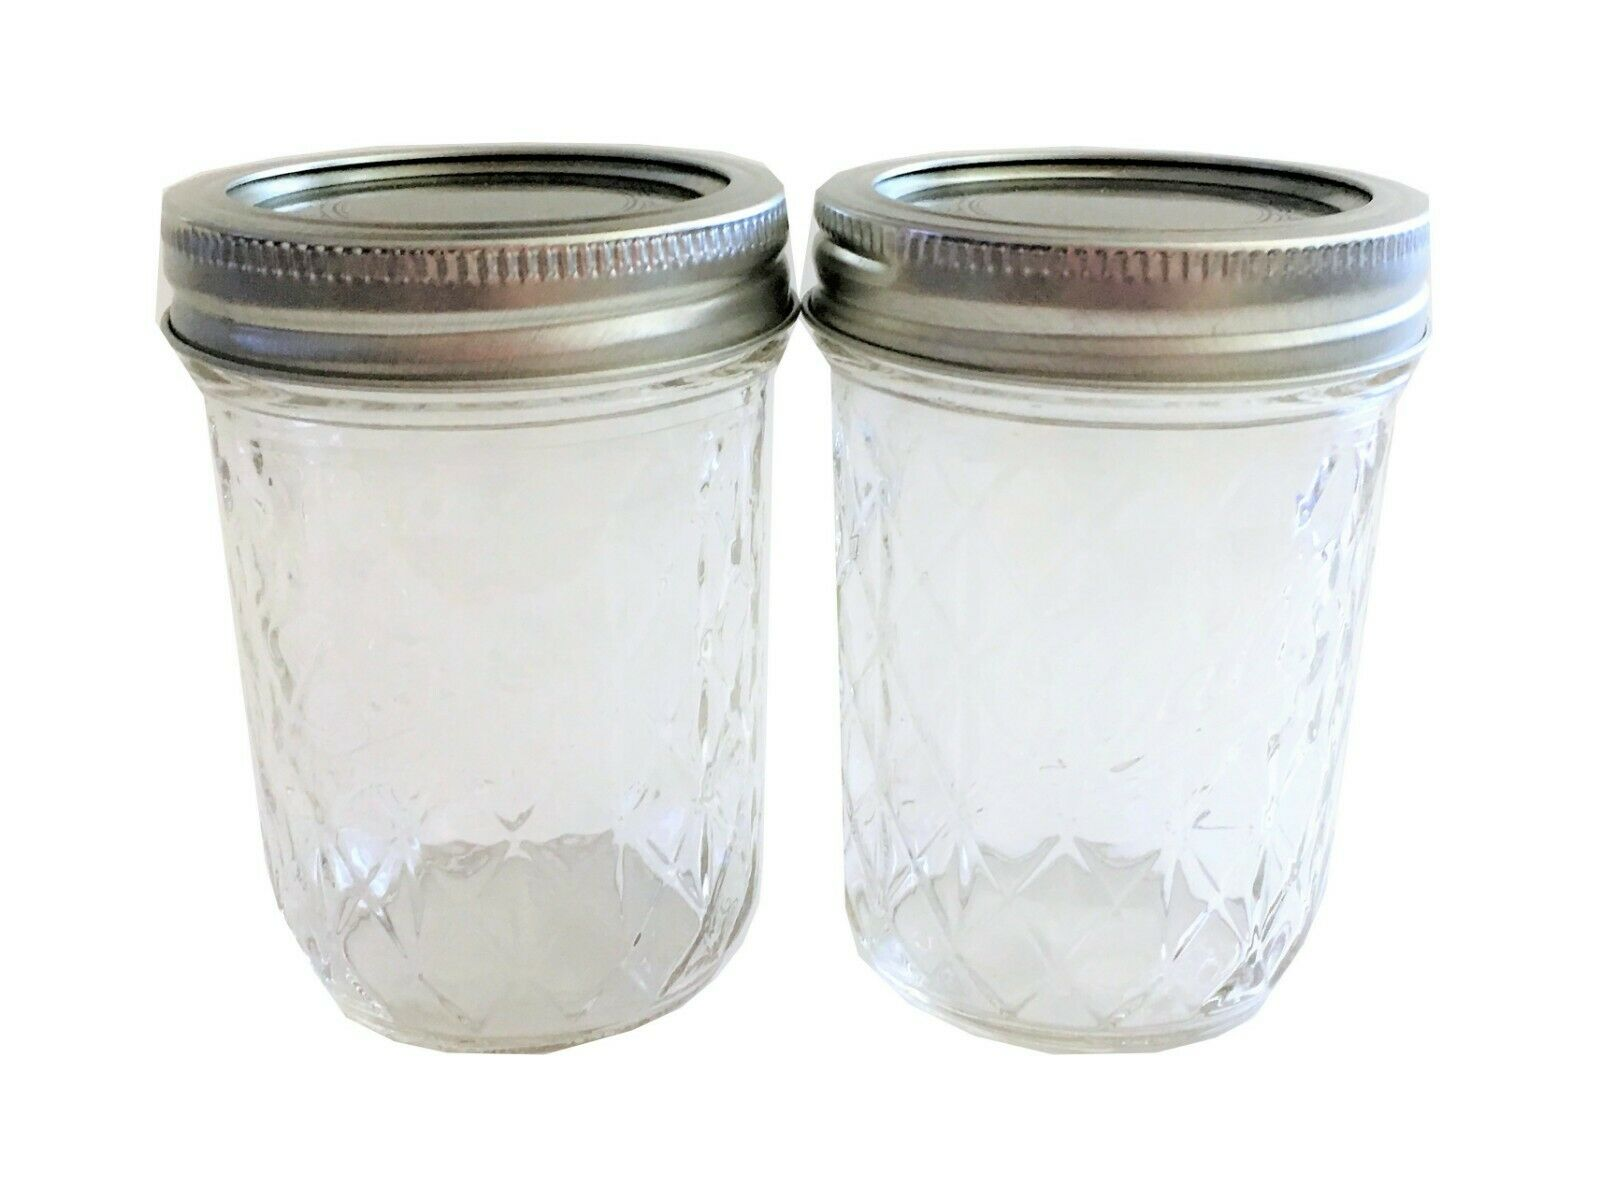 Ball Mason Jar Jelly Jars 8 oz. Quilted Crystal Style